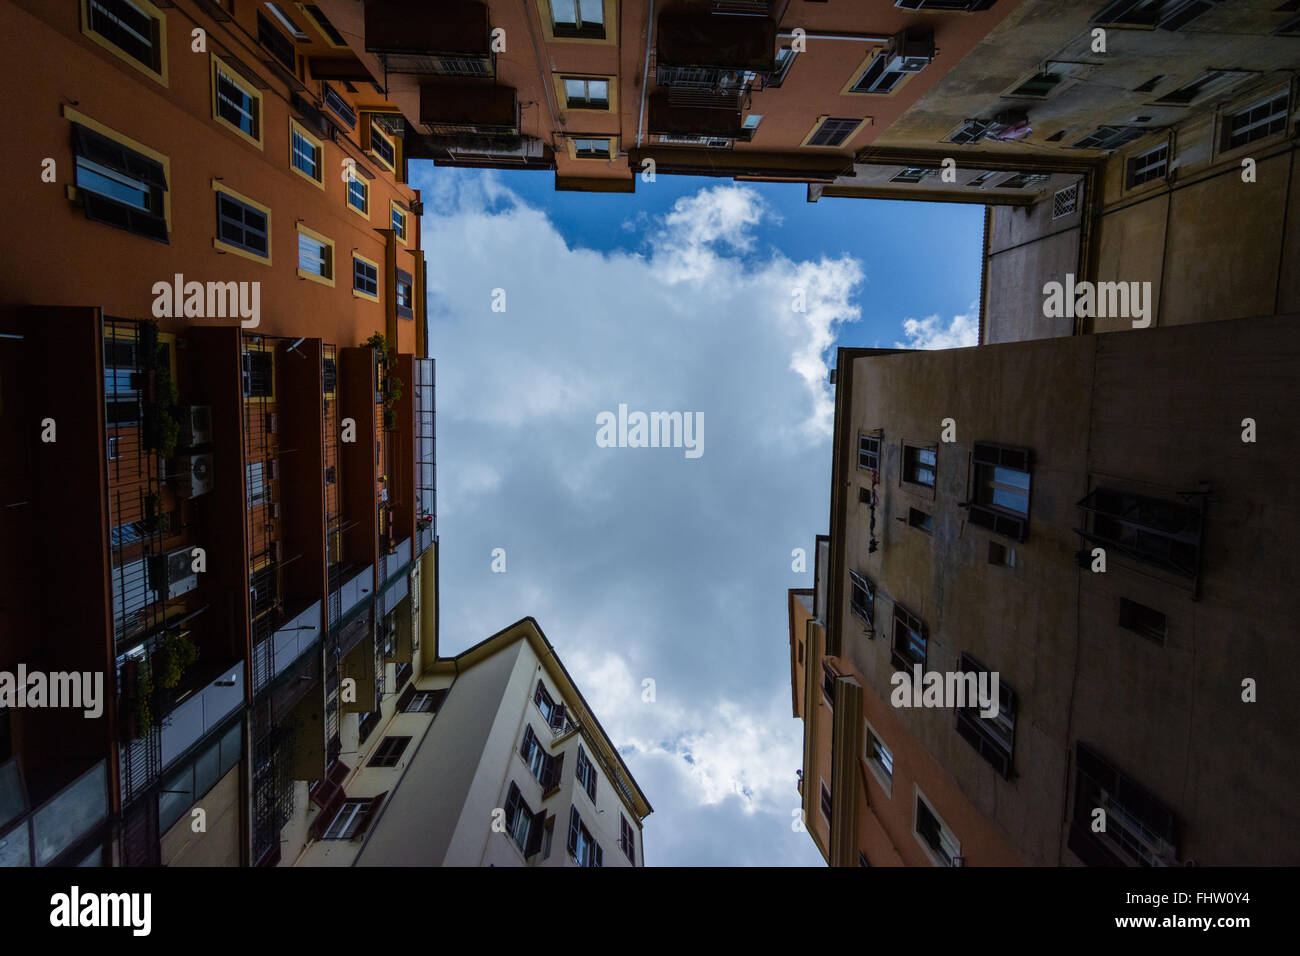 Looking up at the urban sprawl. - Stock Image